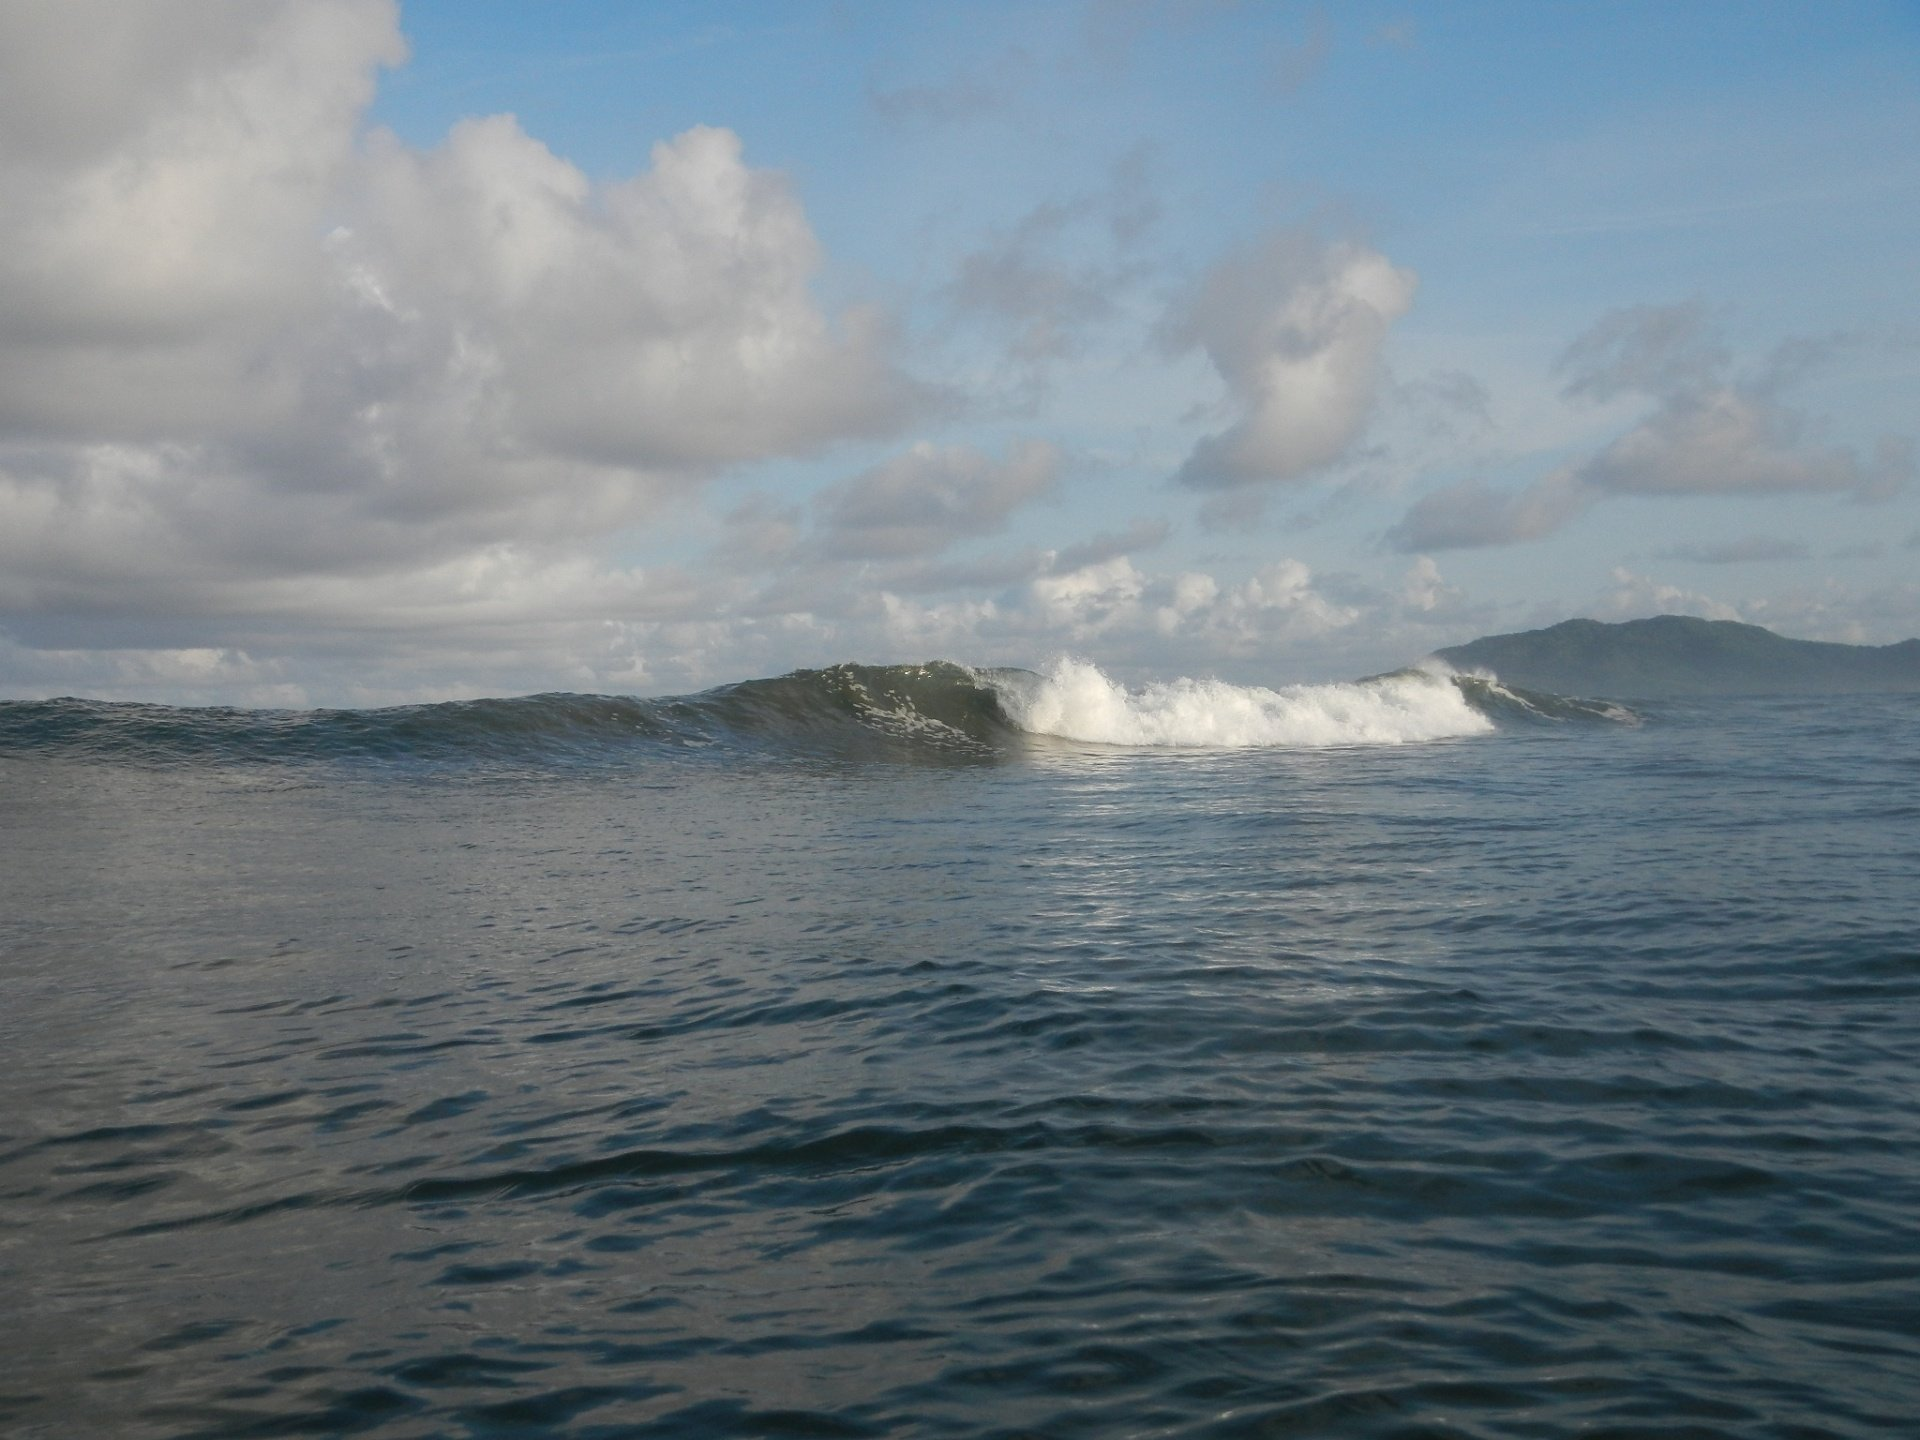 derekmcmullen's photo of Tamarindo